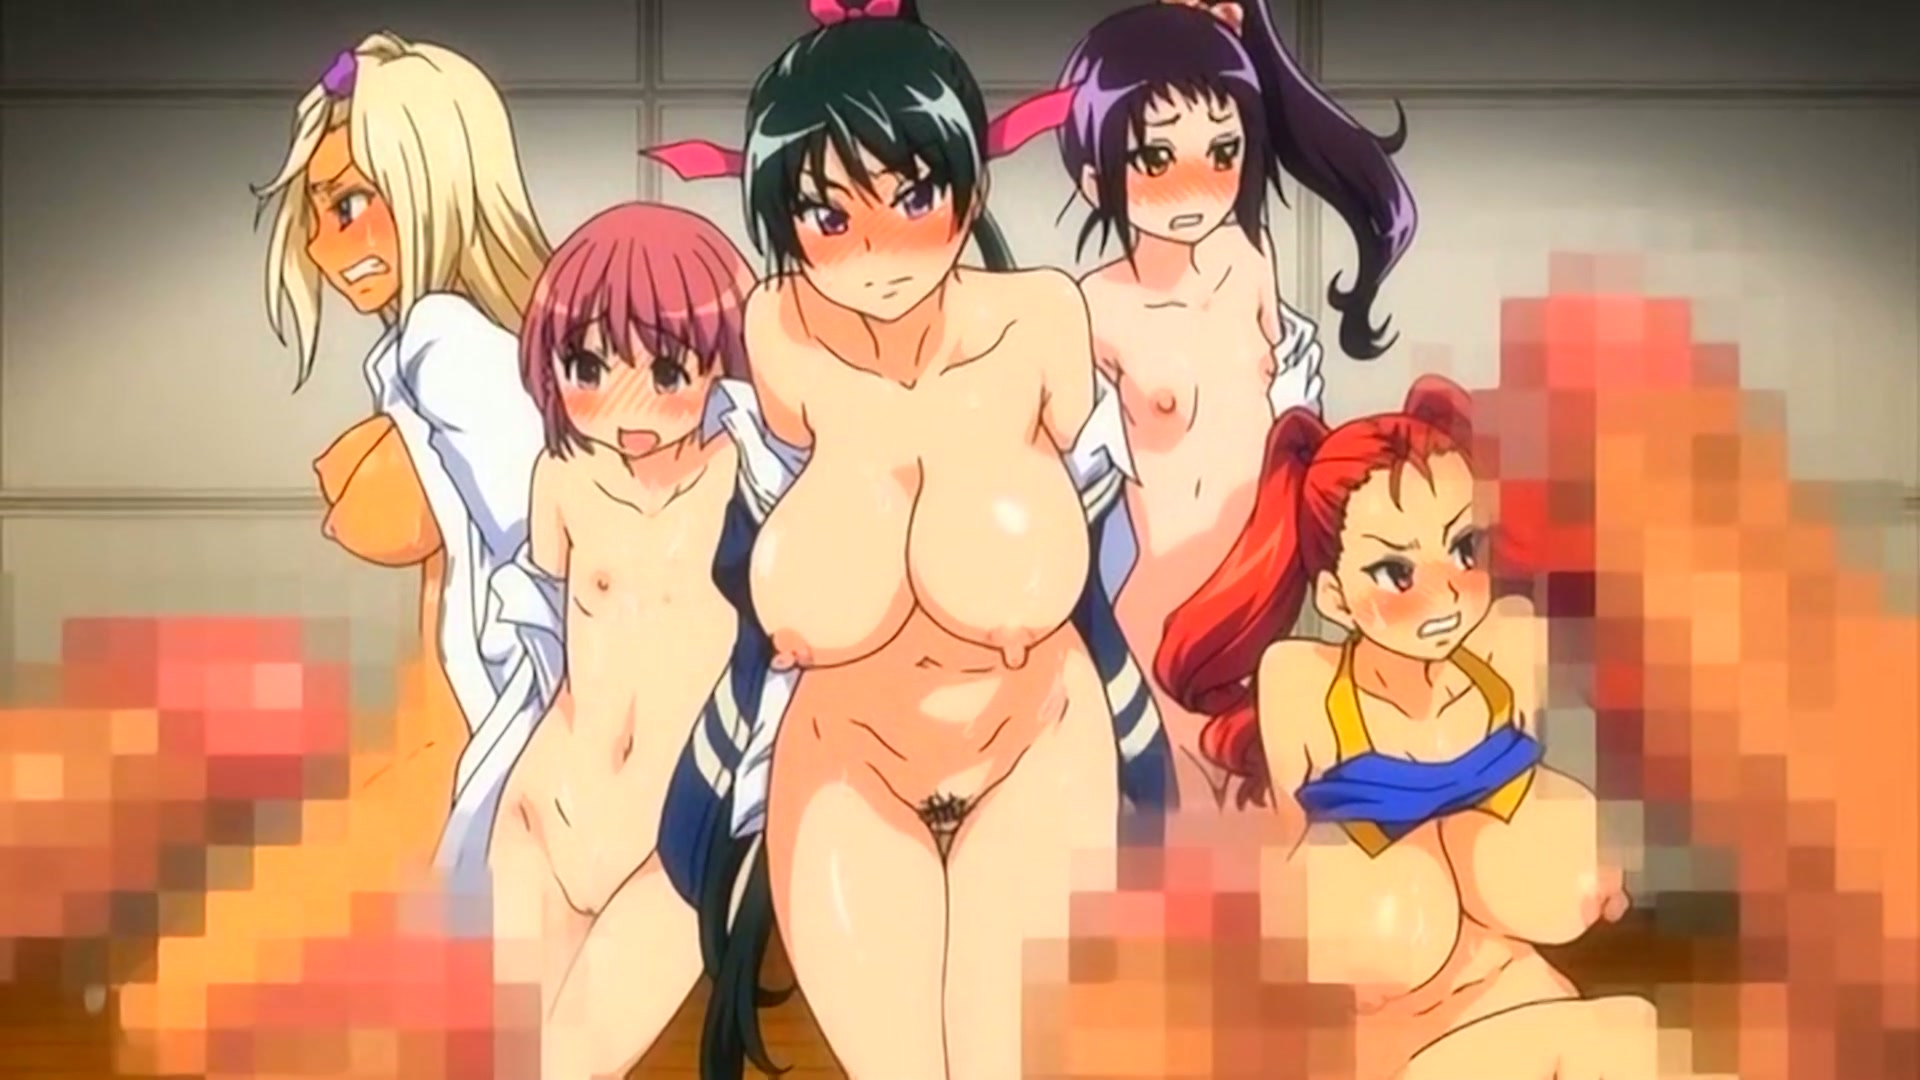 hentai massive cock force - Forced hentai babes getting fucked like a real sluts